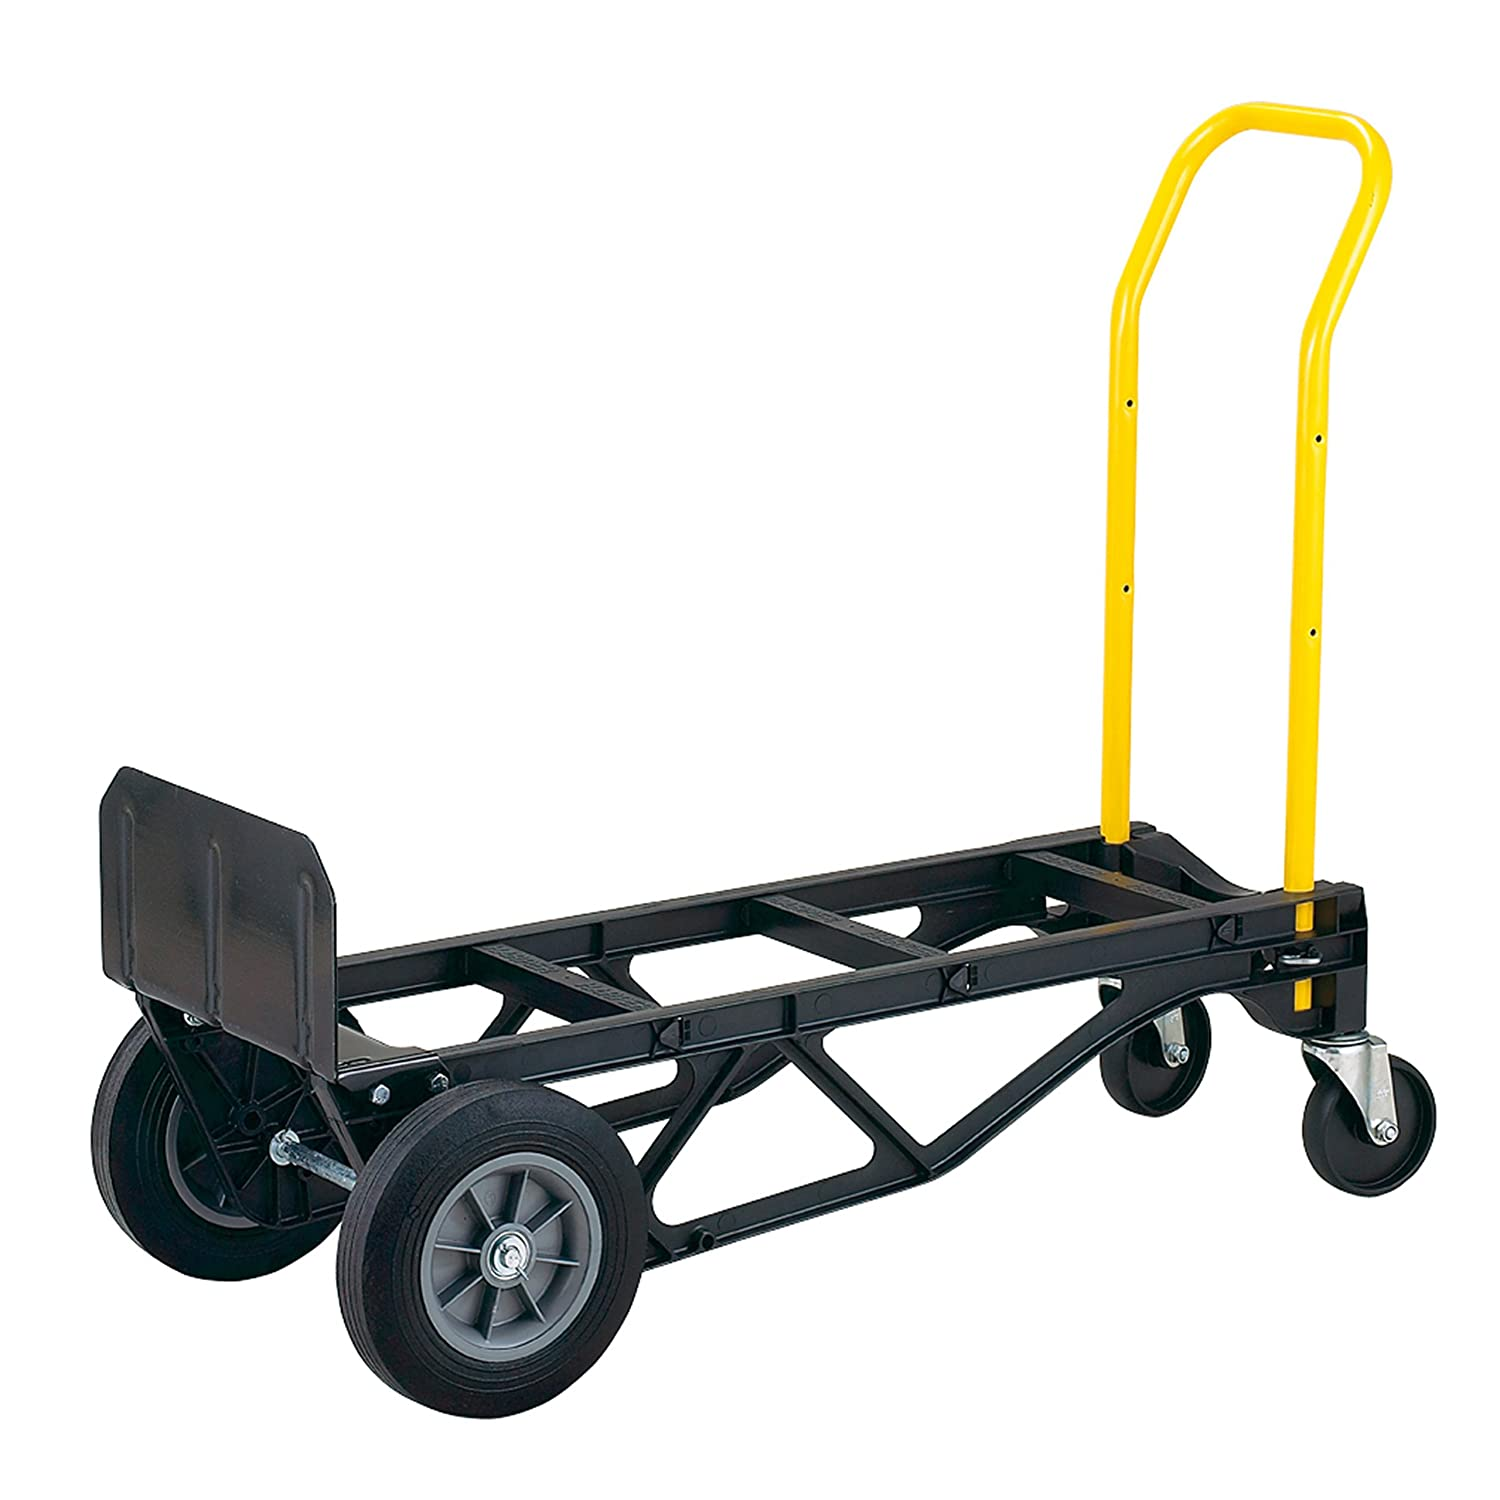 harper trucks 700 lb capacity glass filled nylon convertible hand truck and dolly with 10 flat free solid rubber wheels convertible dolly amazoncom - Convertible Hand Truck